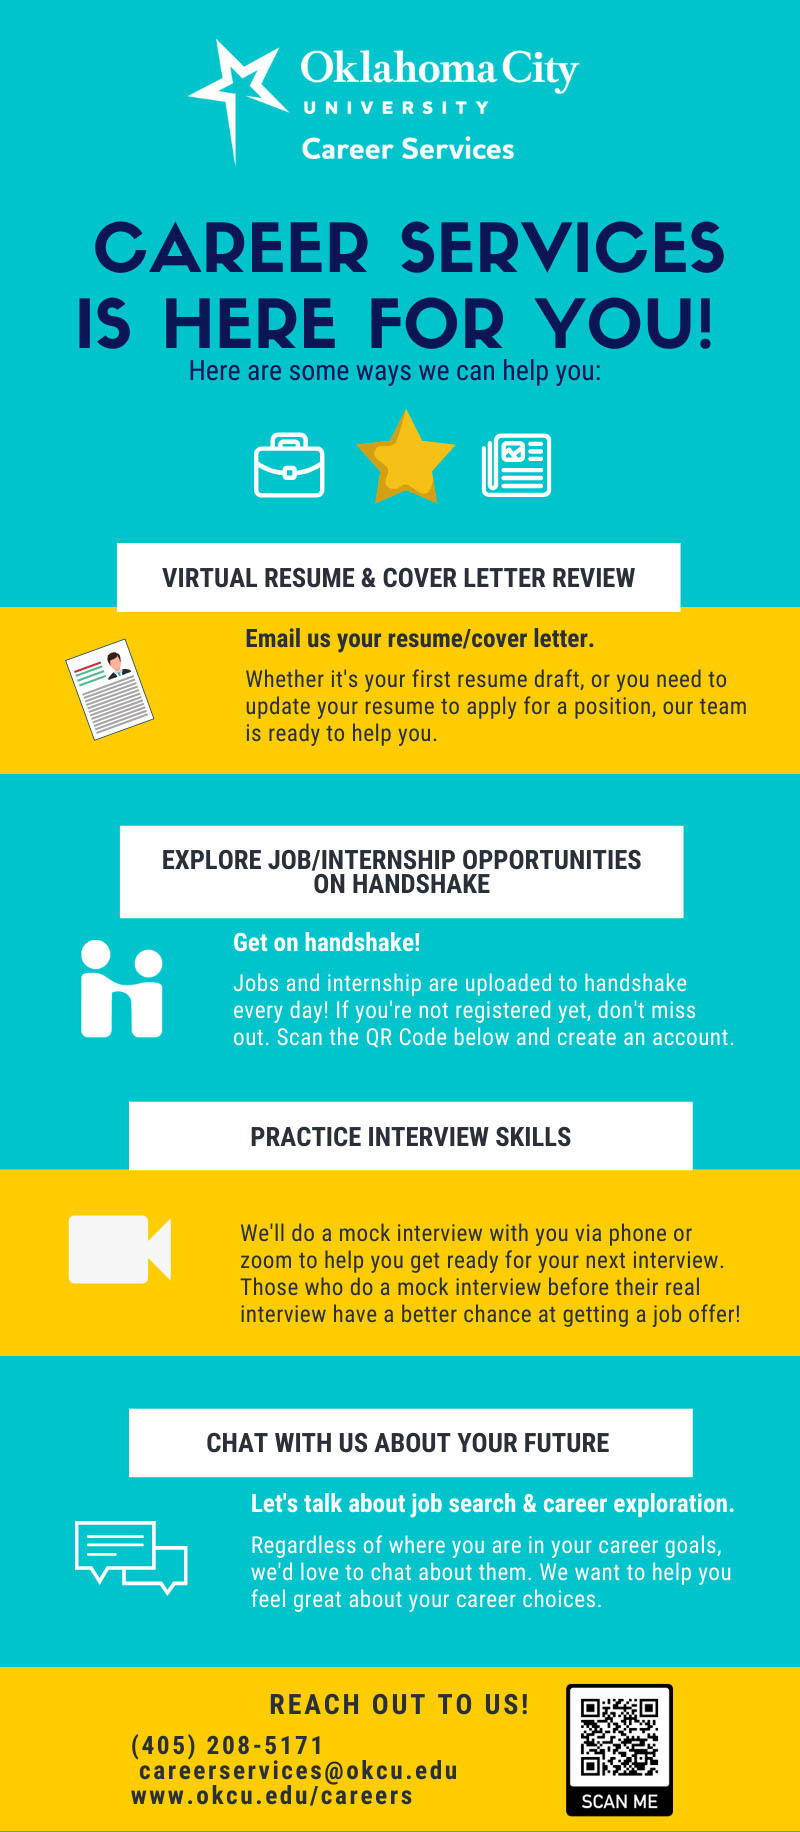 Career Services is here for you! We can help you virtually with resume and cover letter reviews via email and mock interviews and career advising via Zoom. You can email us at careerservices@okcu.edu for an appointment!